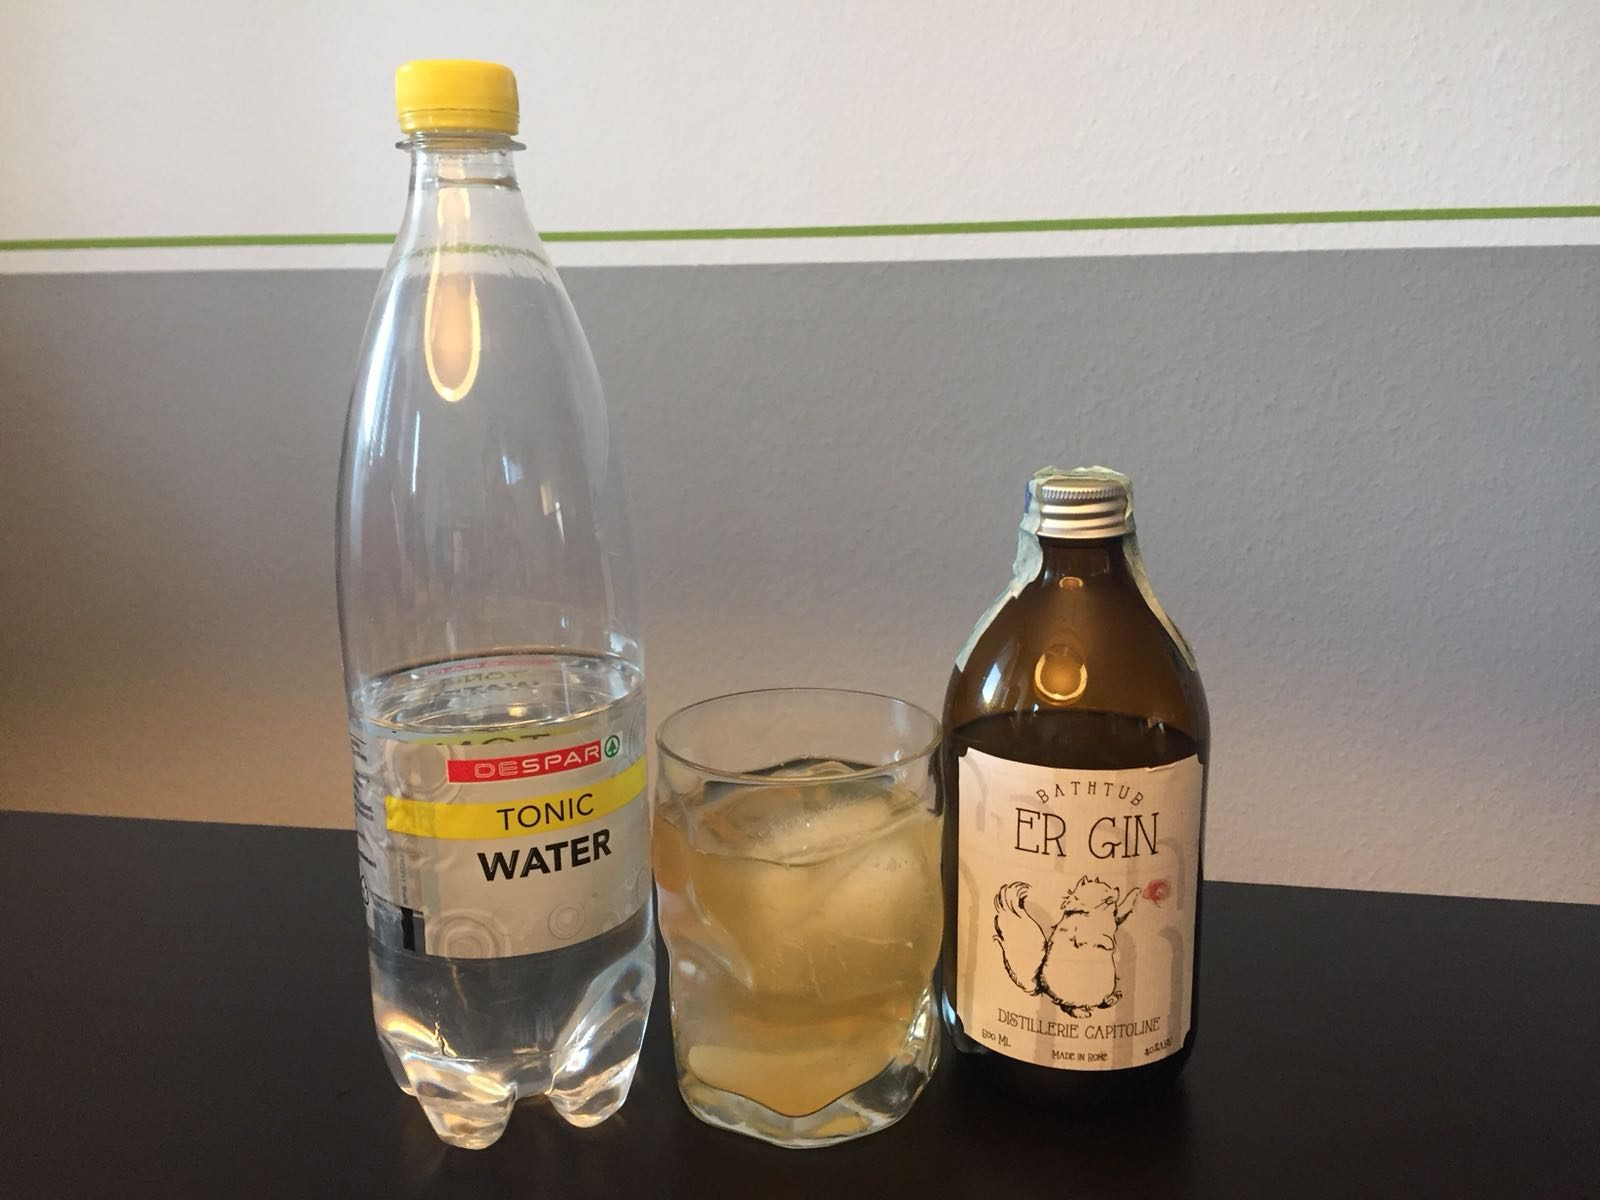 Er Gin und DeSpar Tonic Water